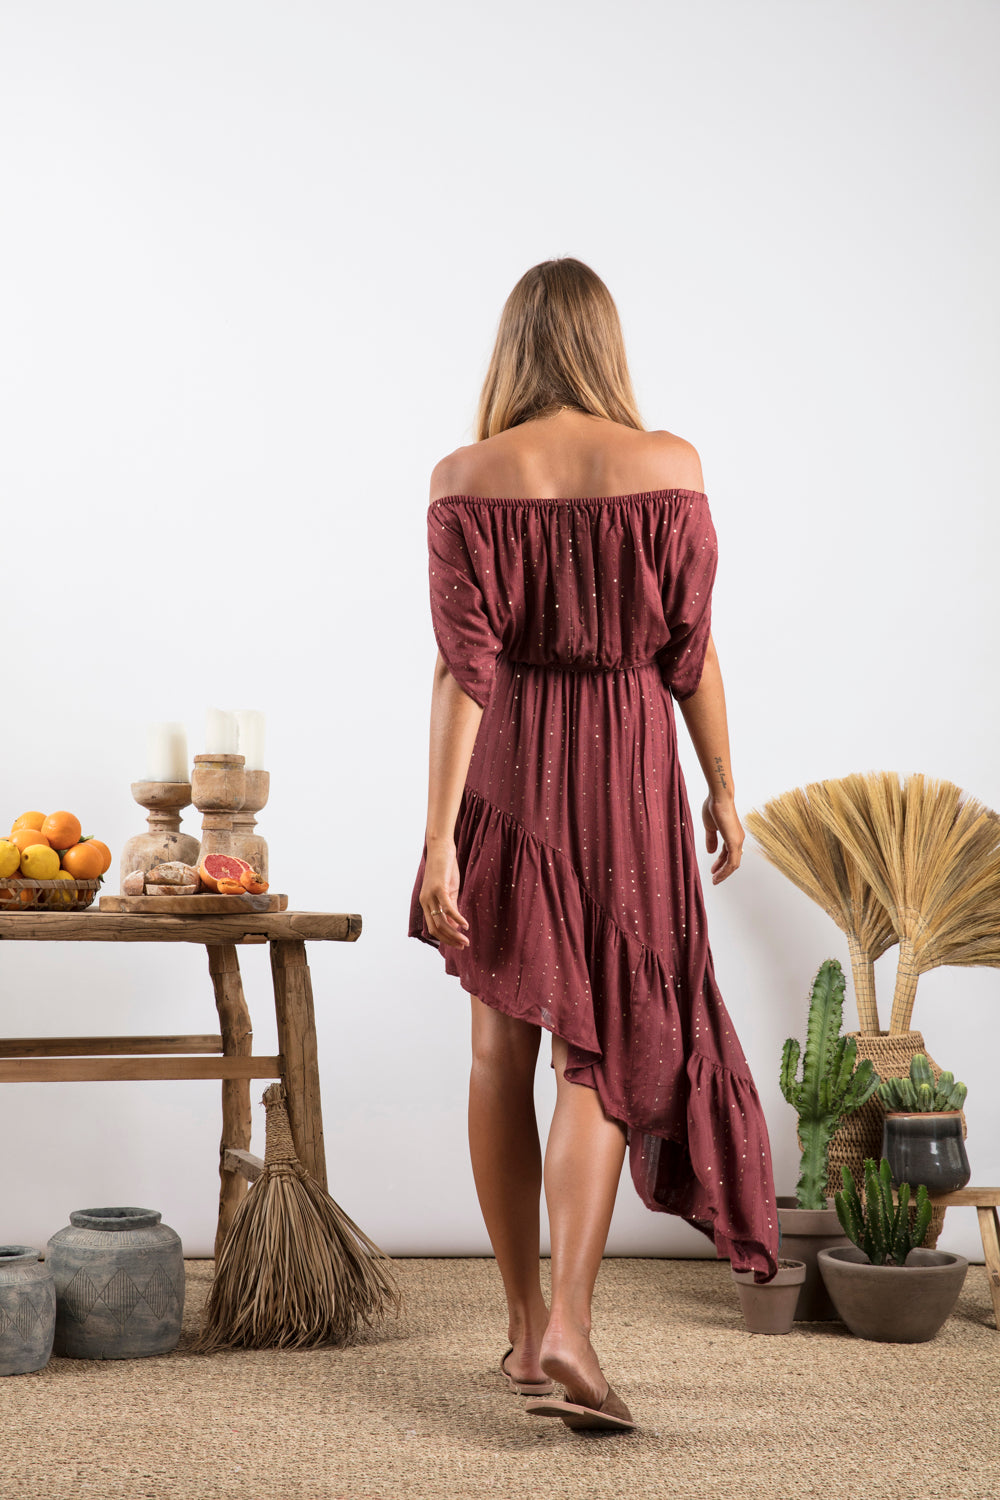 Sundress Salma Precieuse Marsala Off-the-Shoulder Dress